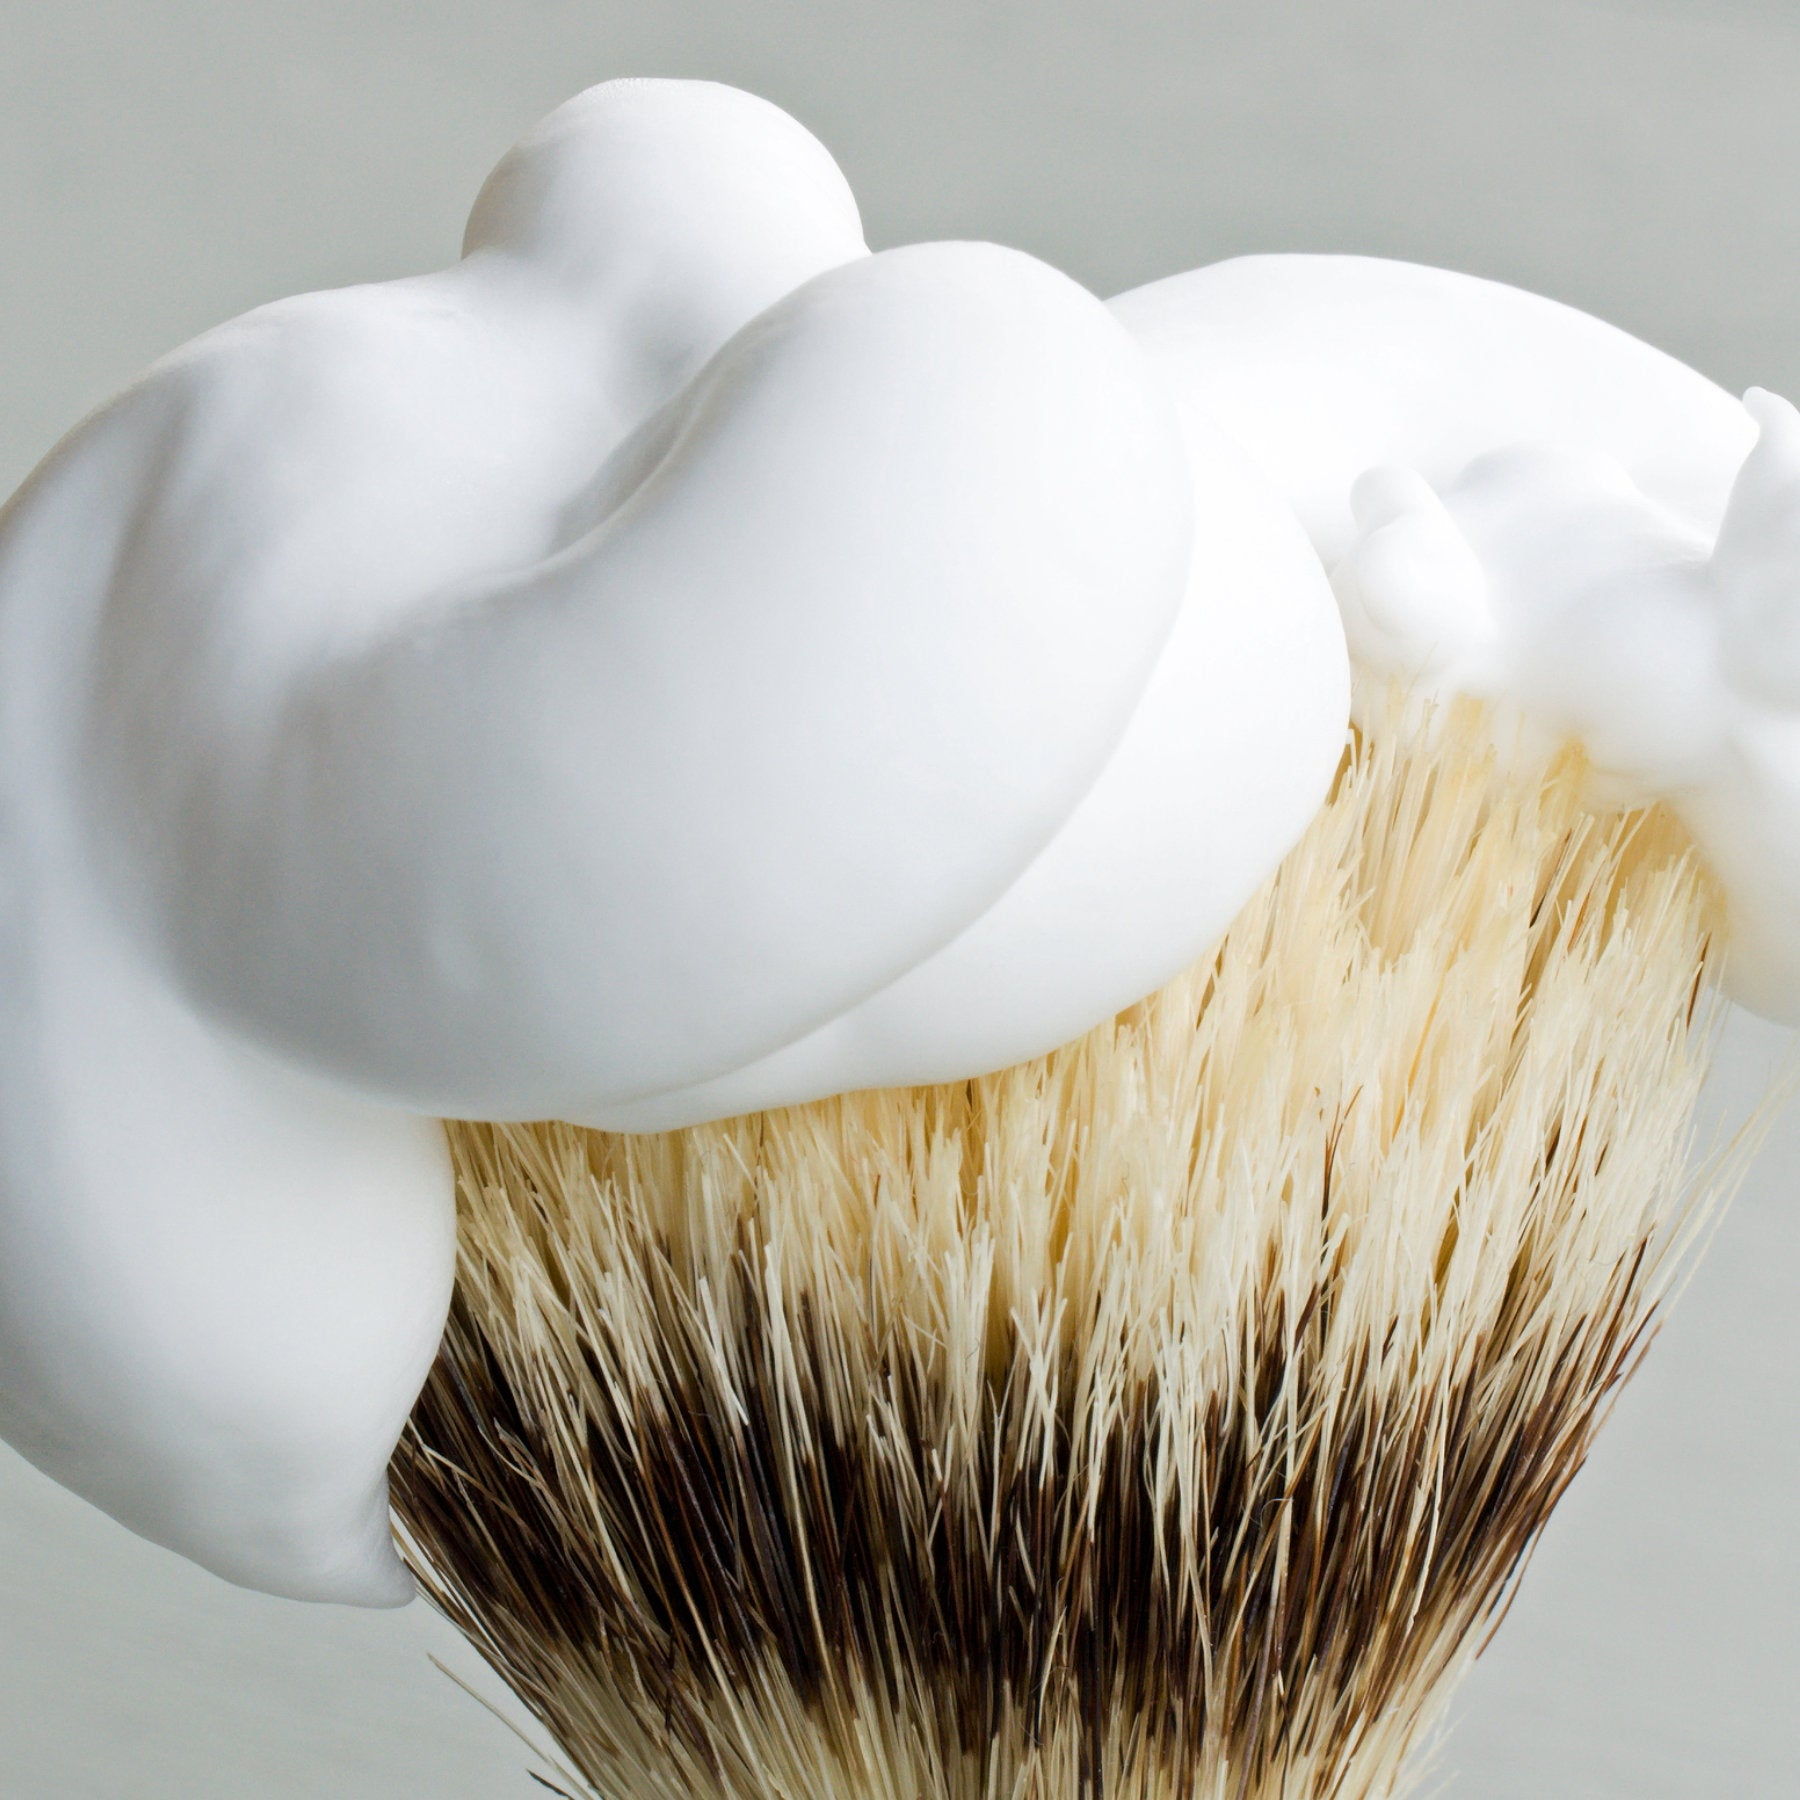 Shaving Brushes at Swiss Knife Shop